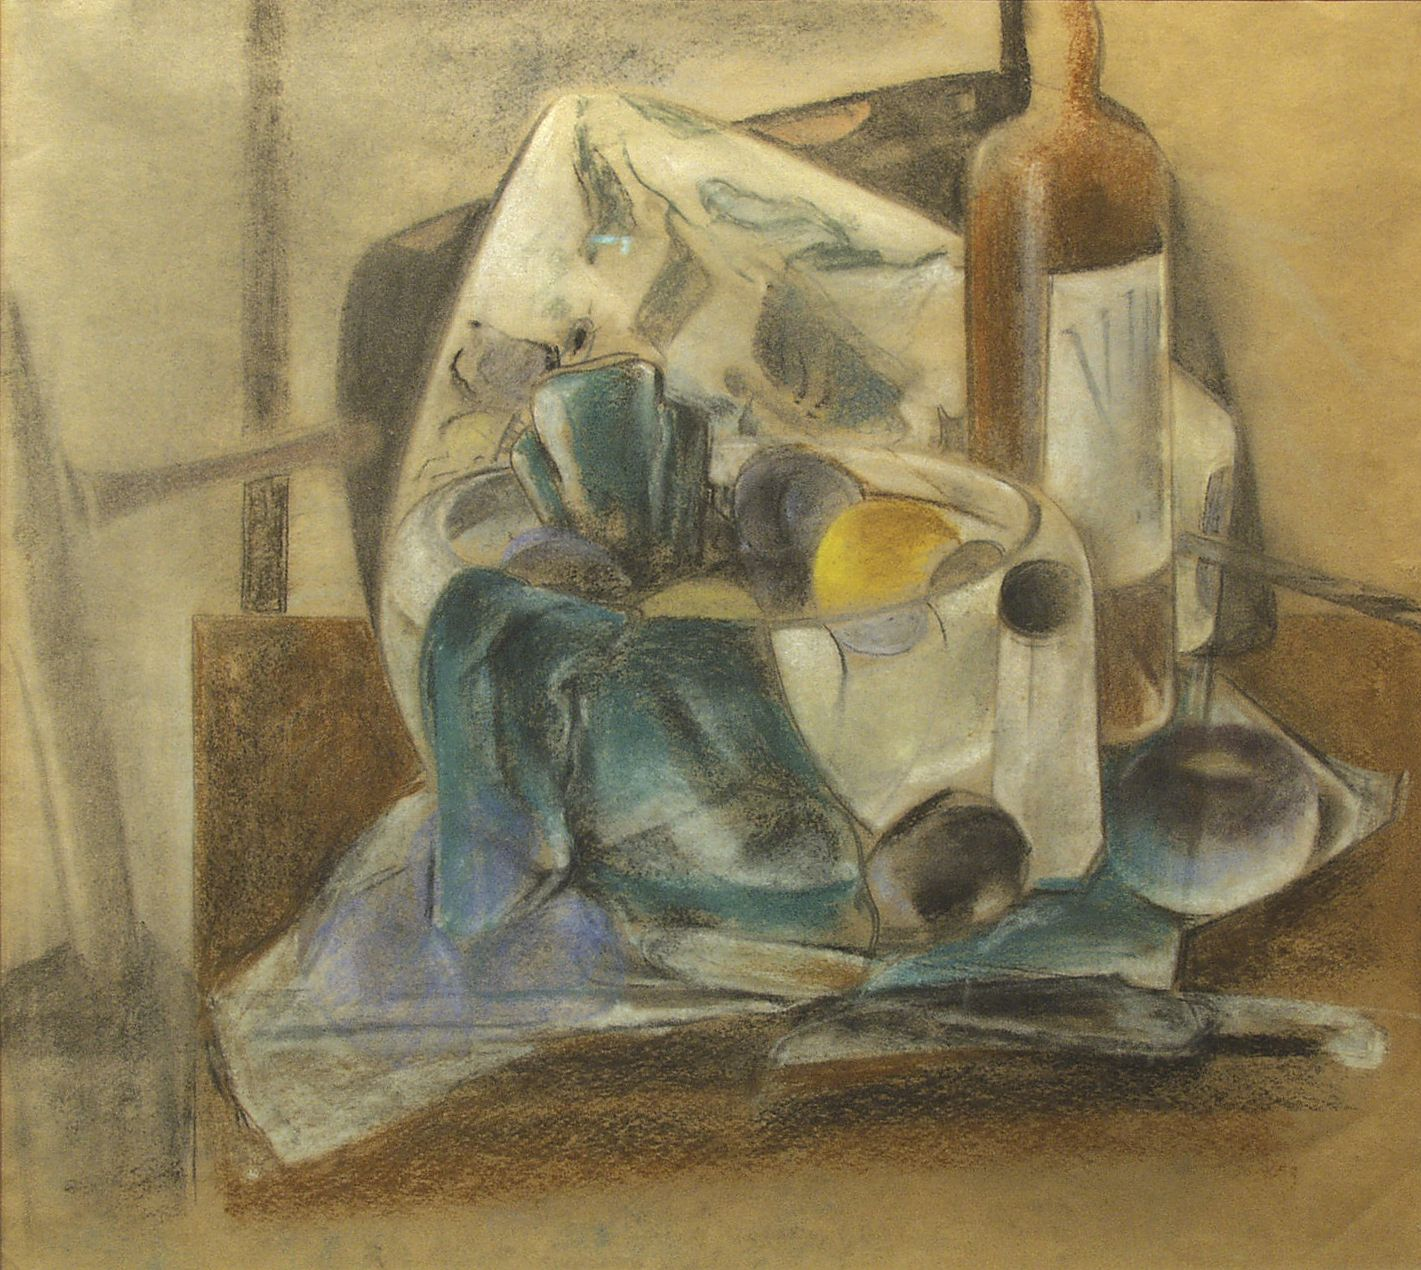 preston dickinson, Still Life, Fruit and Wine, 1926-27, pastel and chalk on paper, 18 x 20 inches